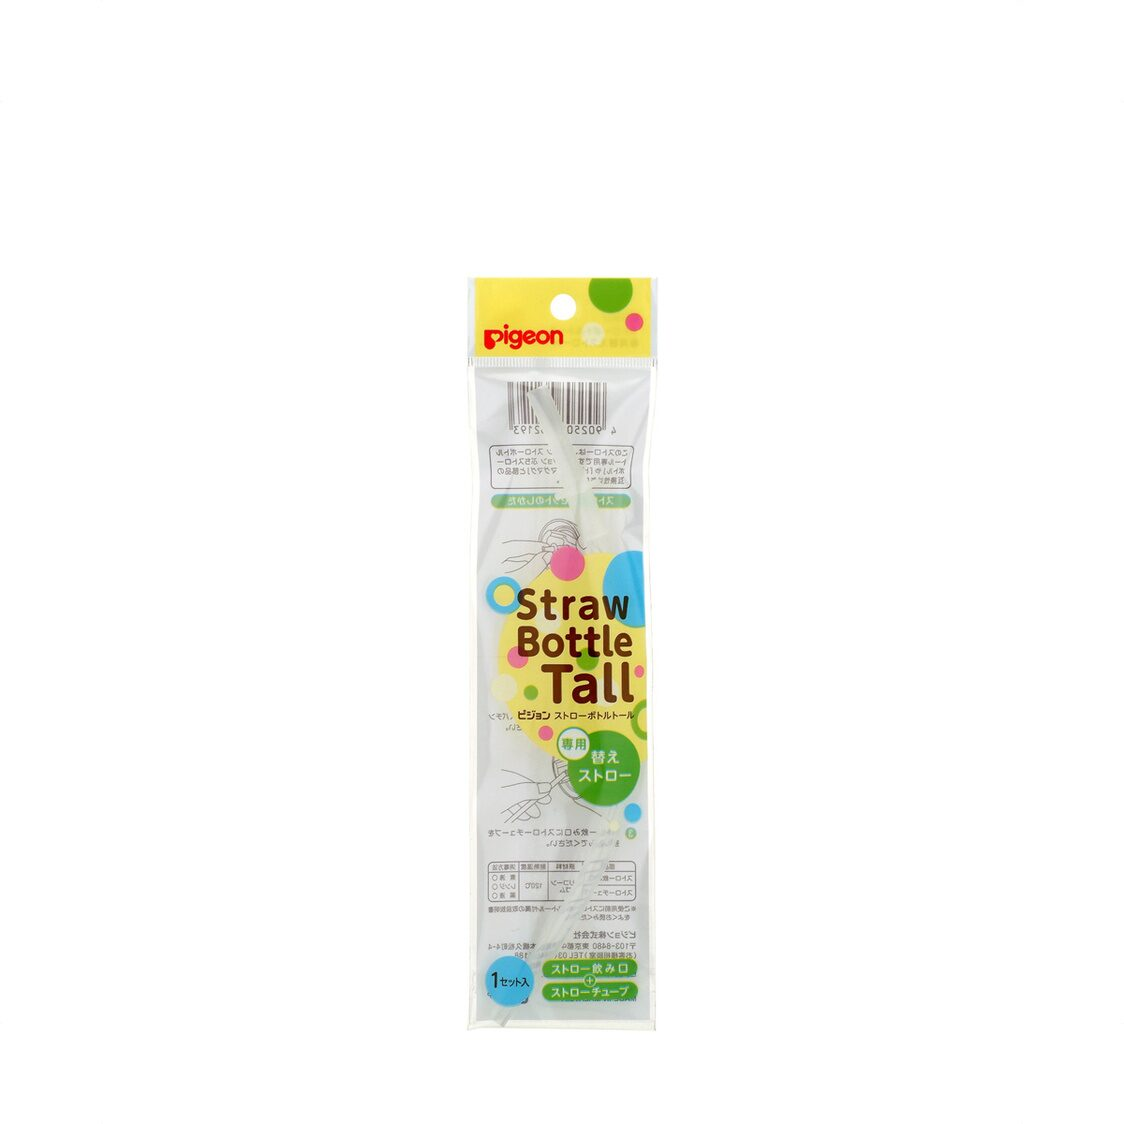 Spare Straw For Tall Bottle